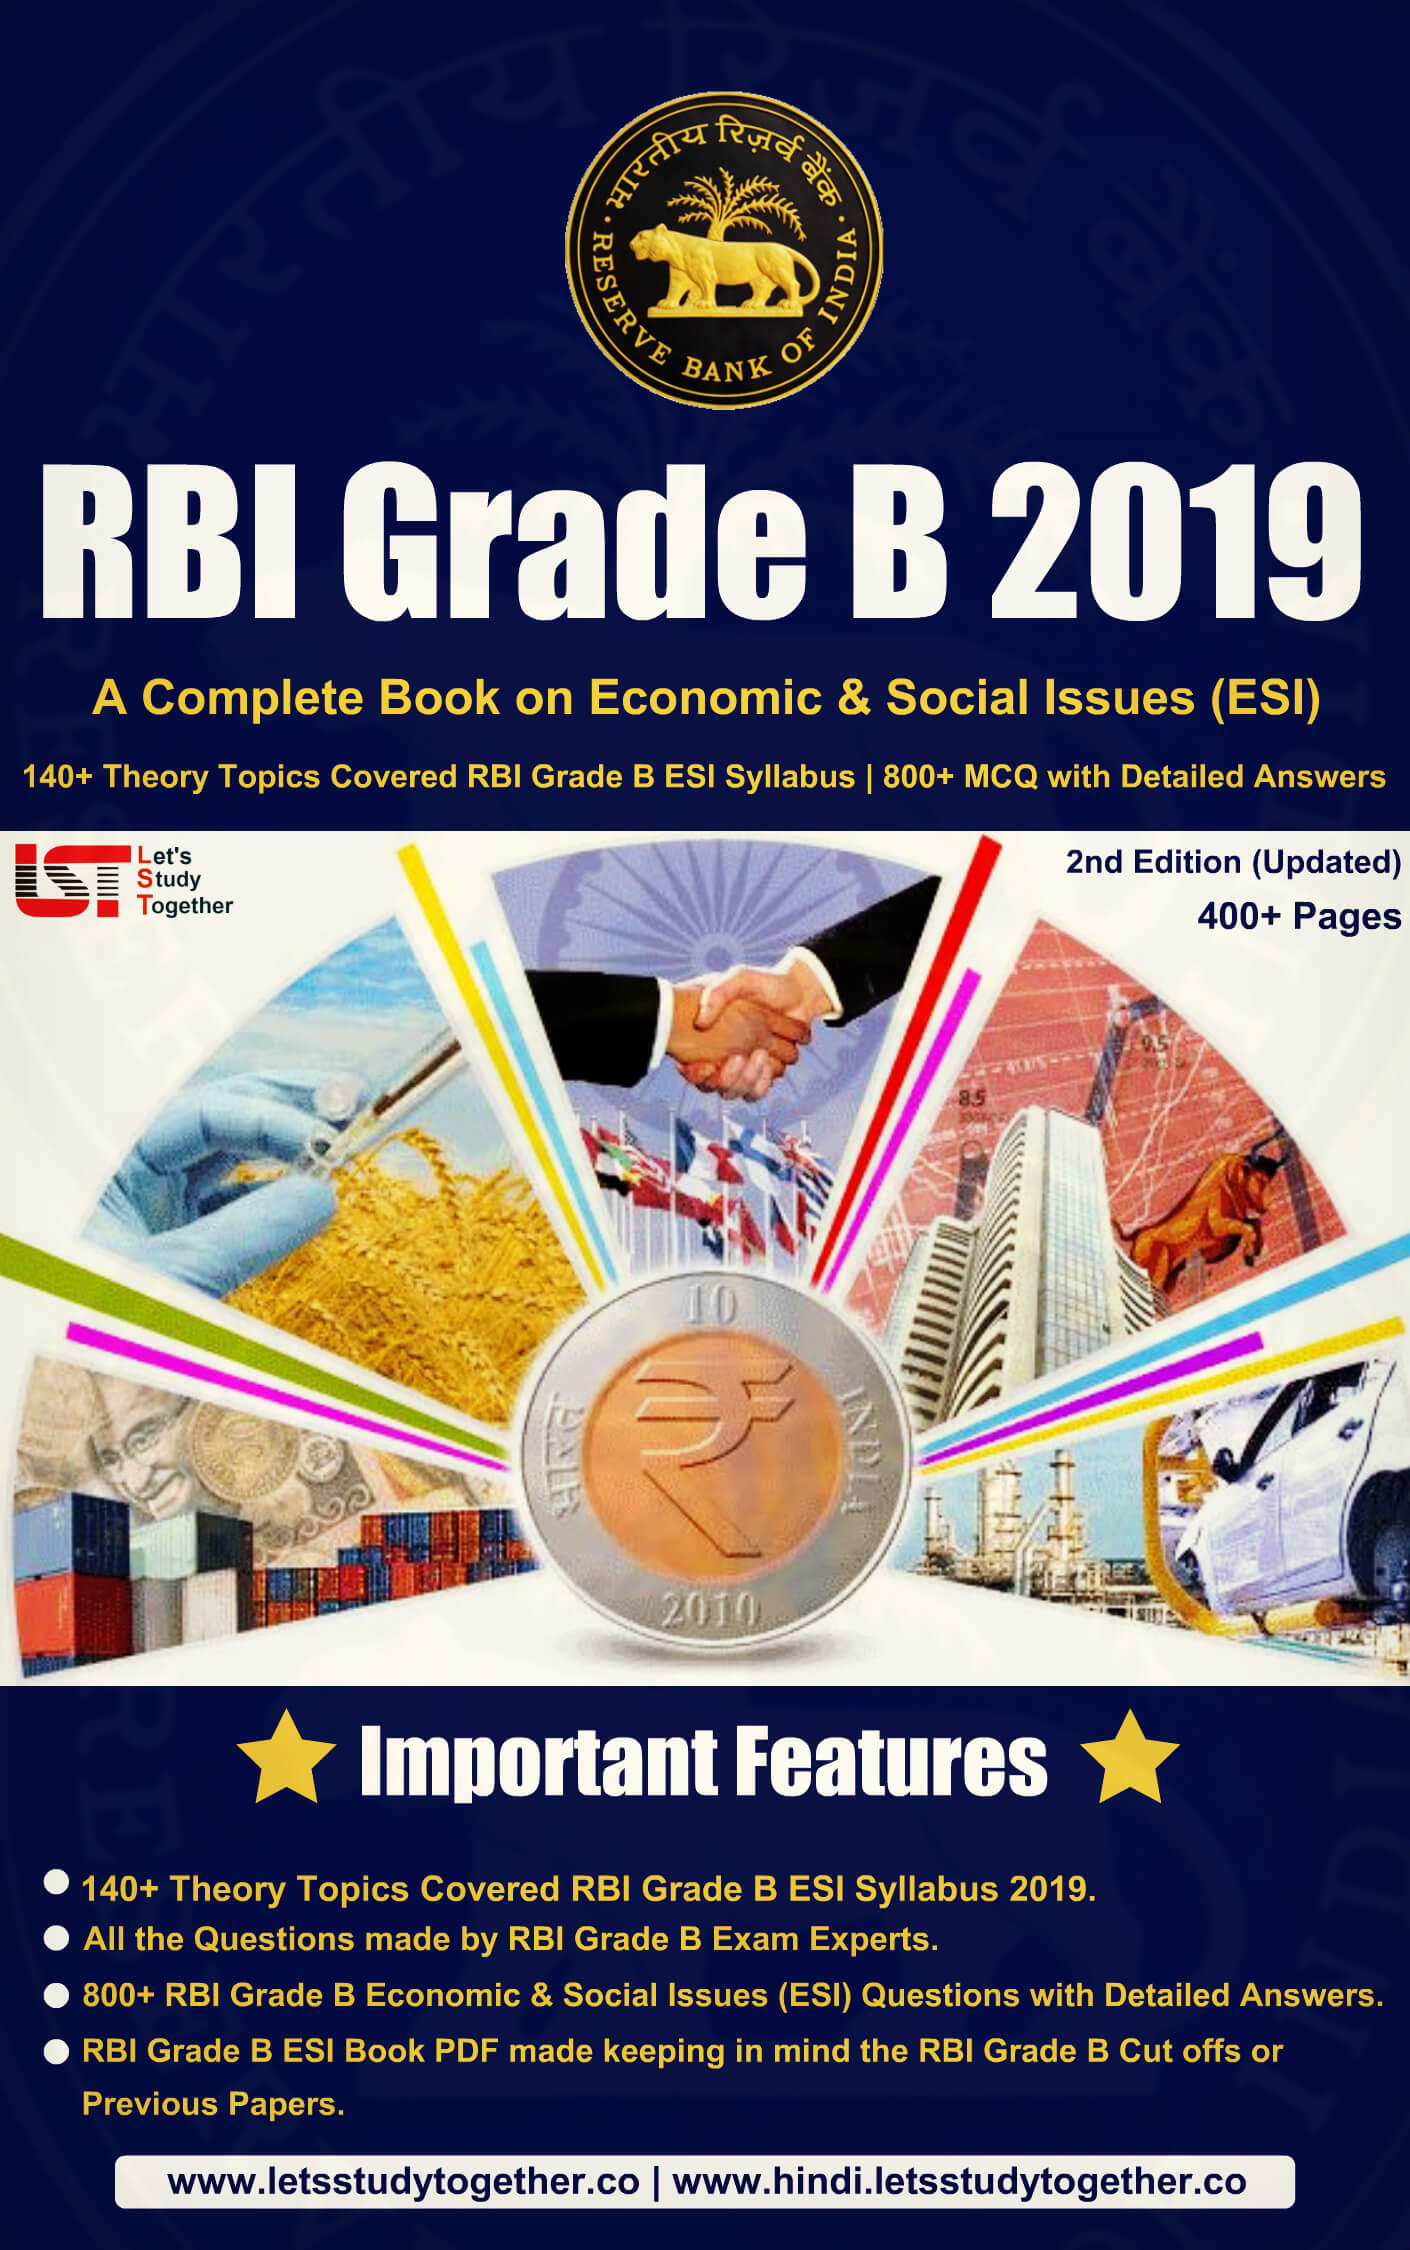 A Complete Book for RBI Grade B Economic & Social Issues (ESI)